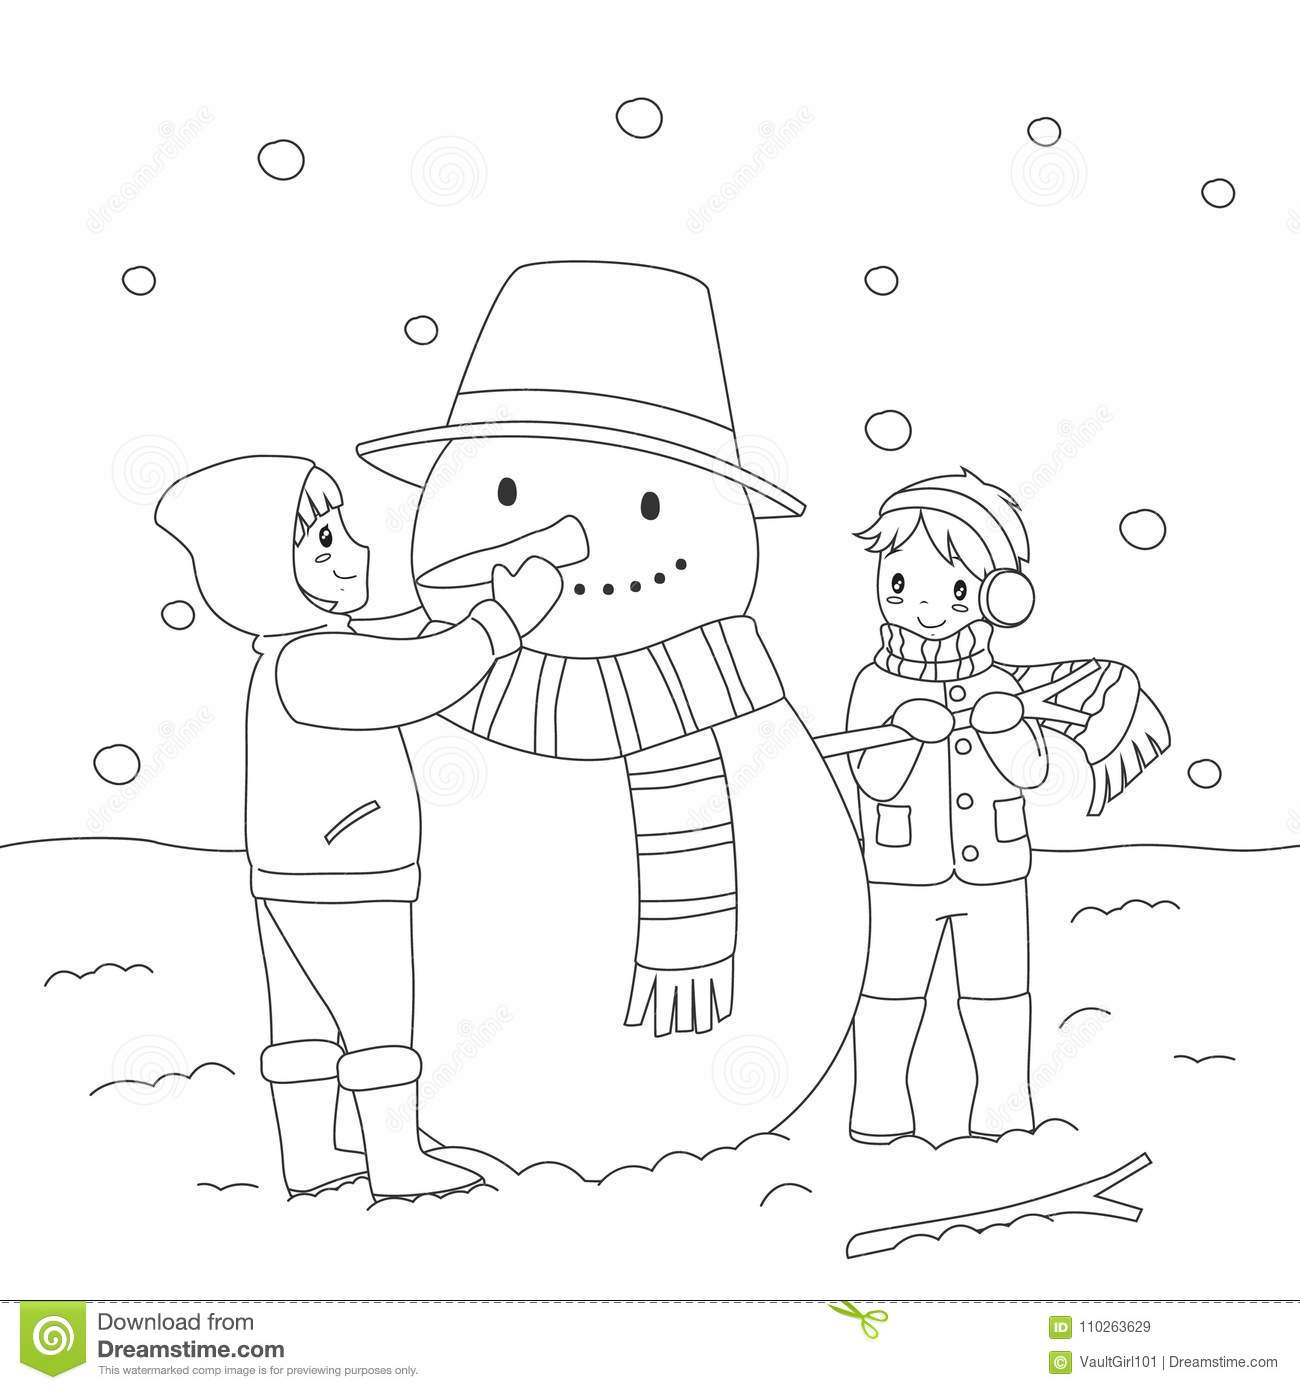 Printable Snowman Coloring Page Craft   Snowman coloring pages ...   1390x1300